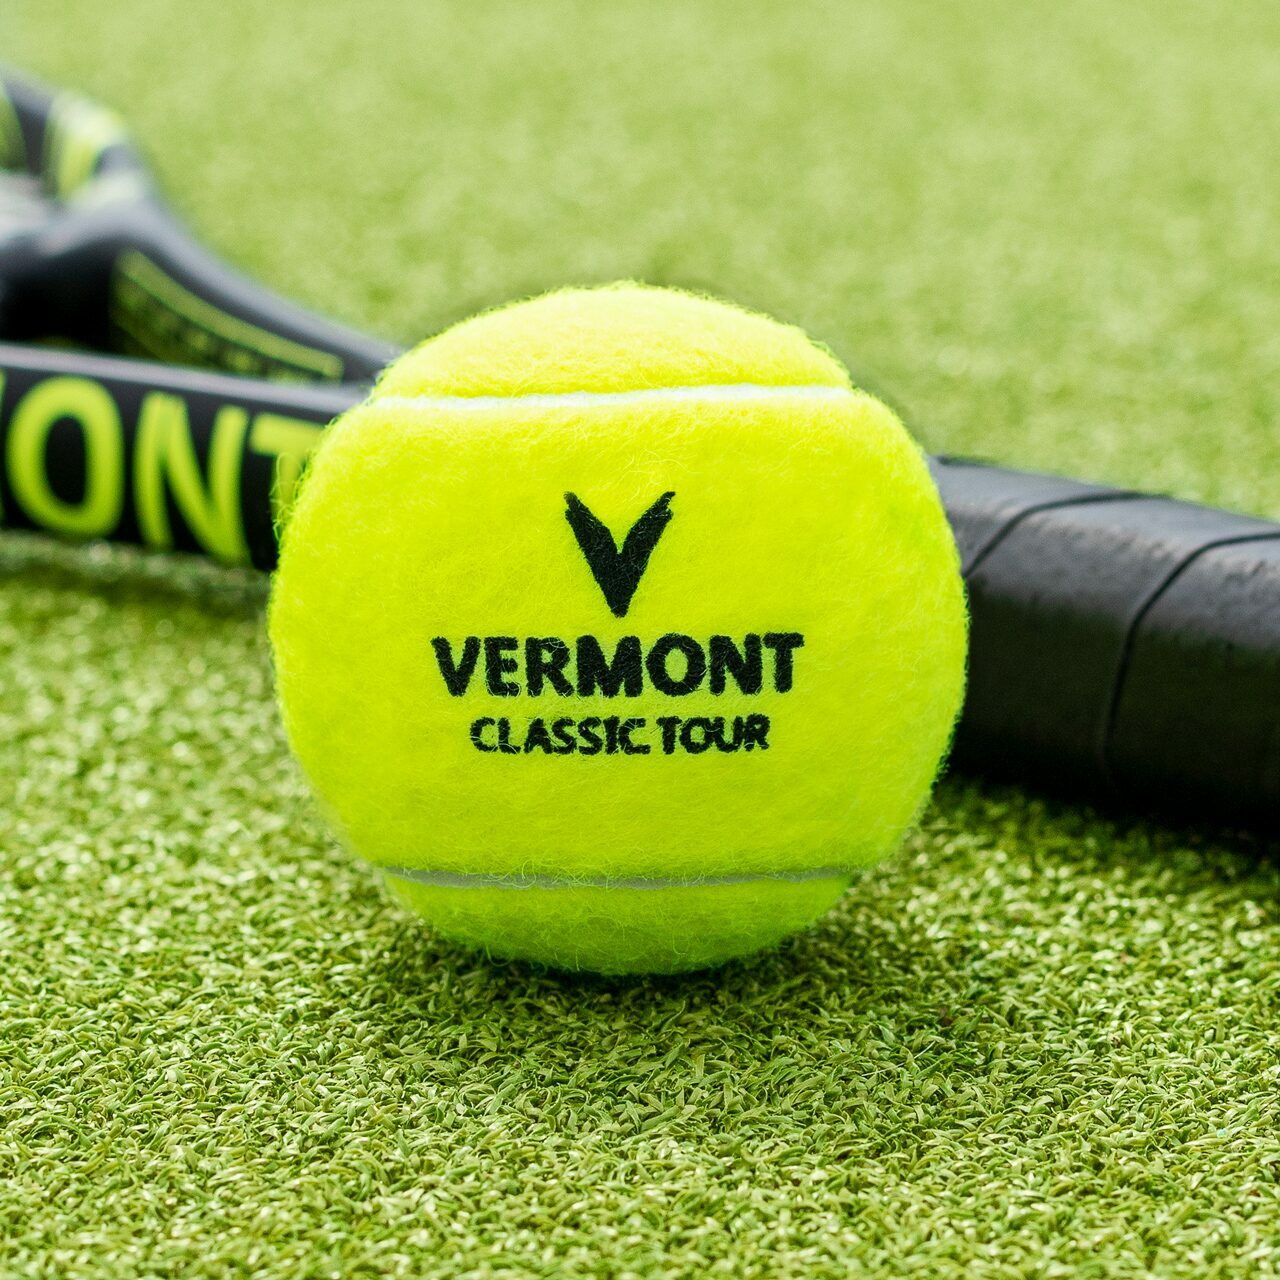 Professional Tennis Balls For Any Tennis Court Surface | Vermont Classic Tour Tennis Balls